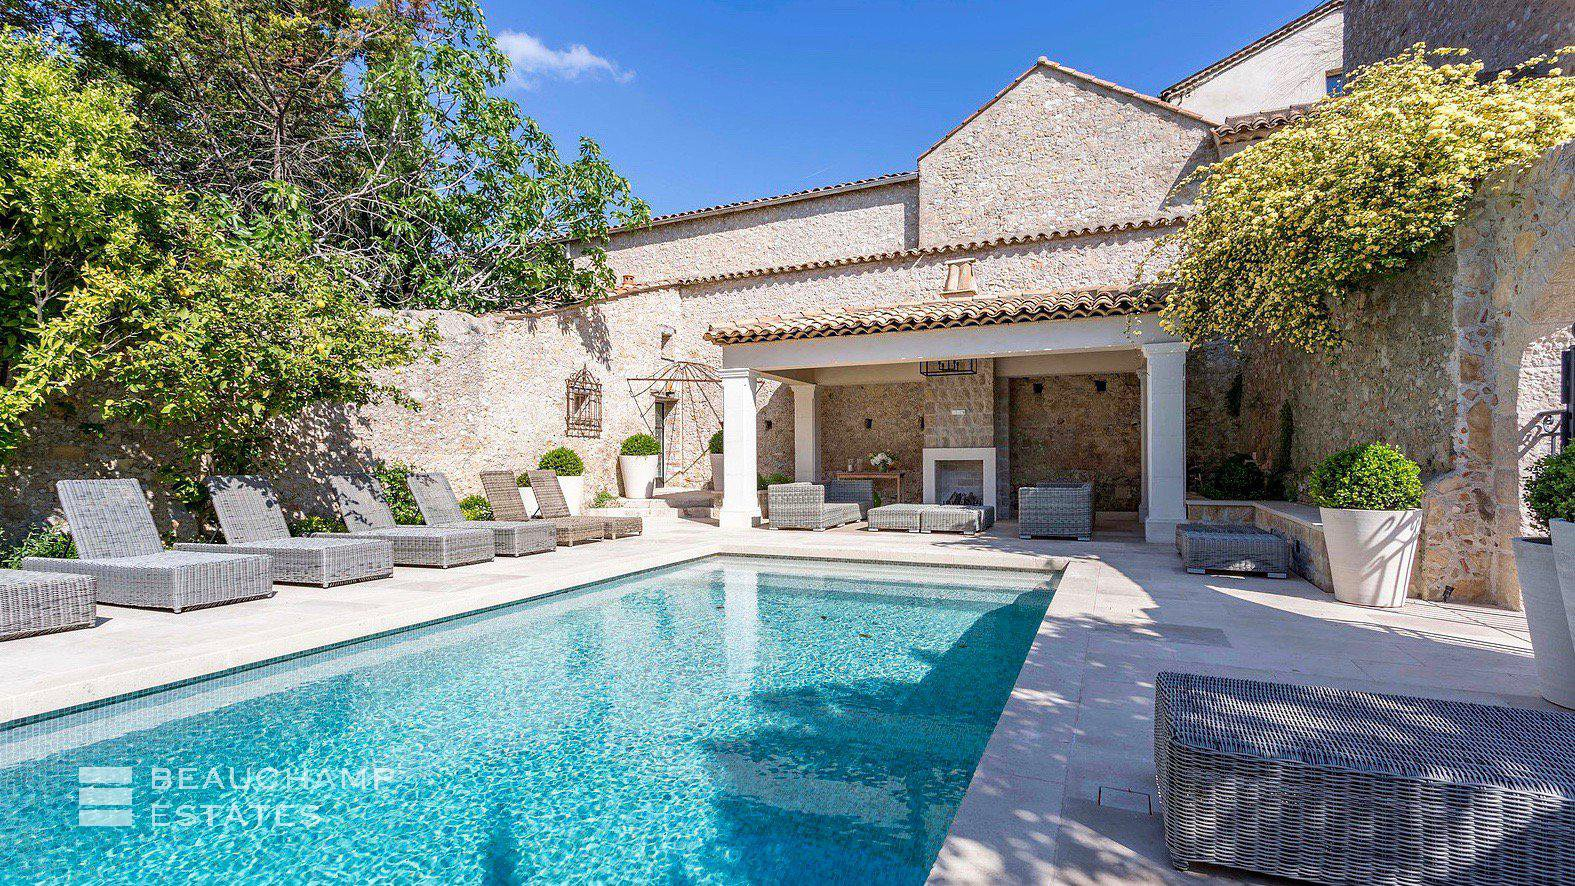 Unique Property in the Heart of the Village of Mougins